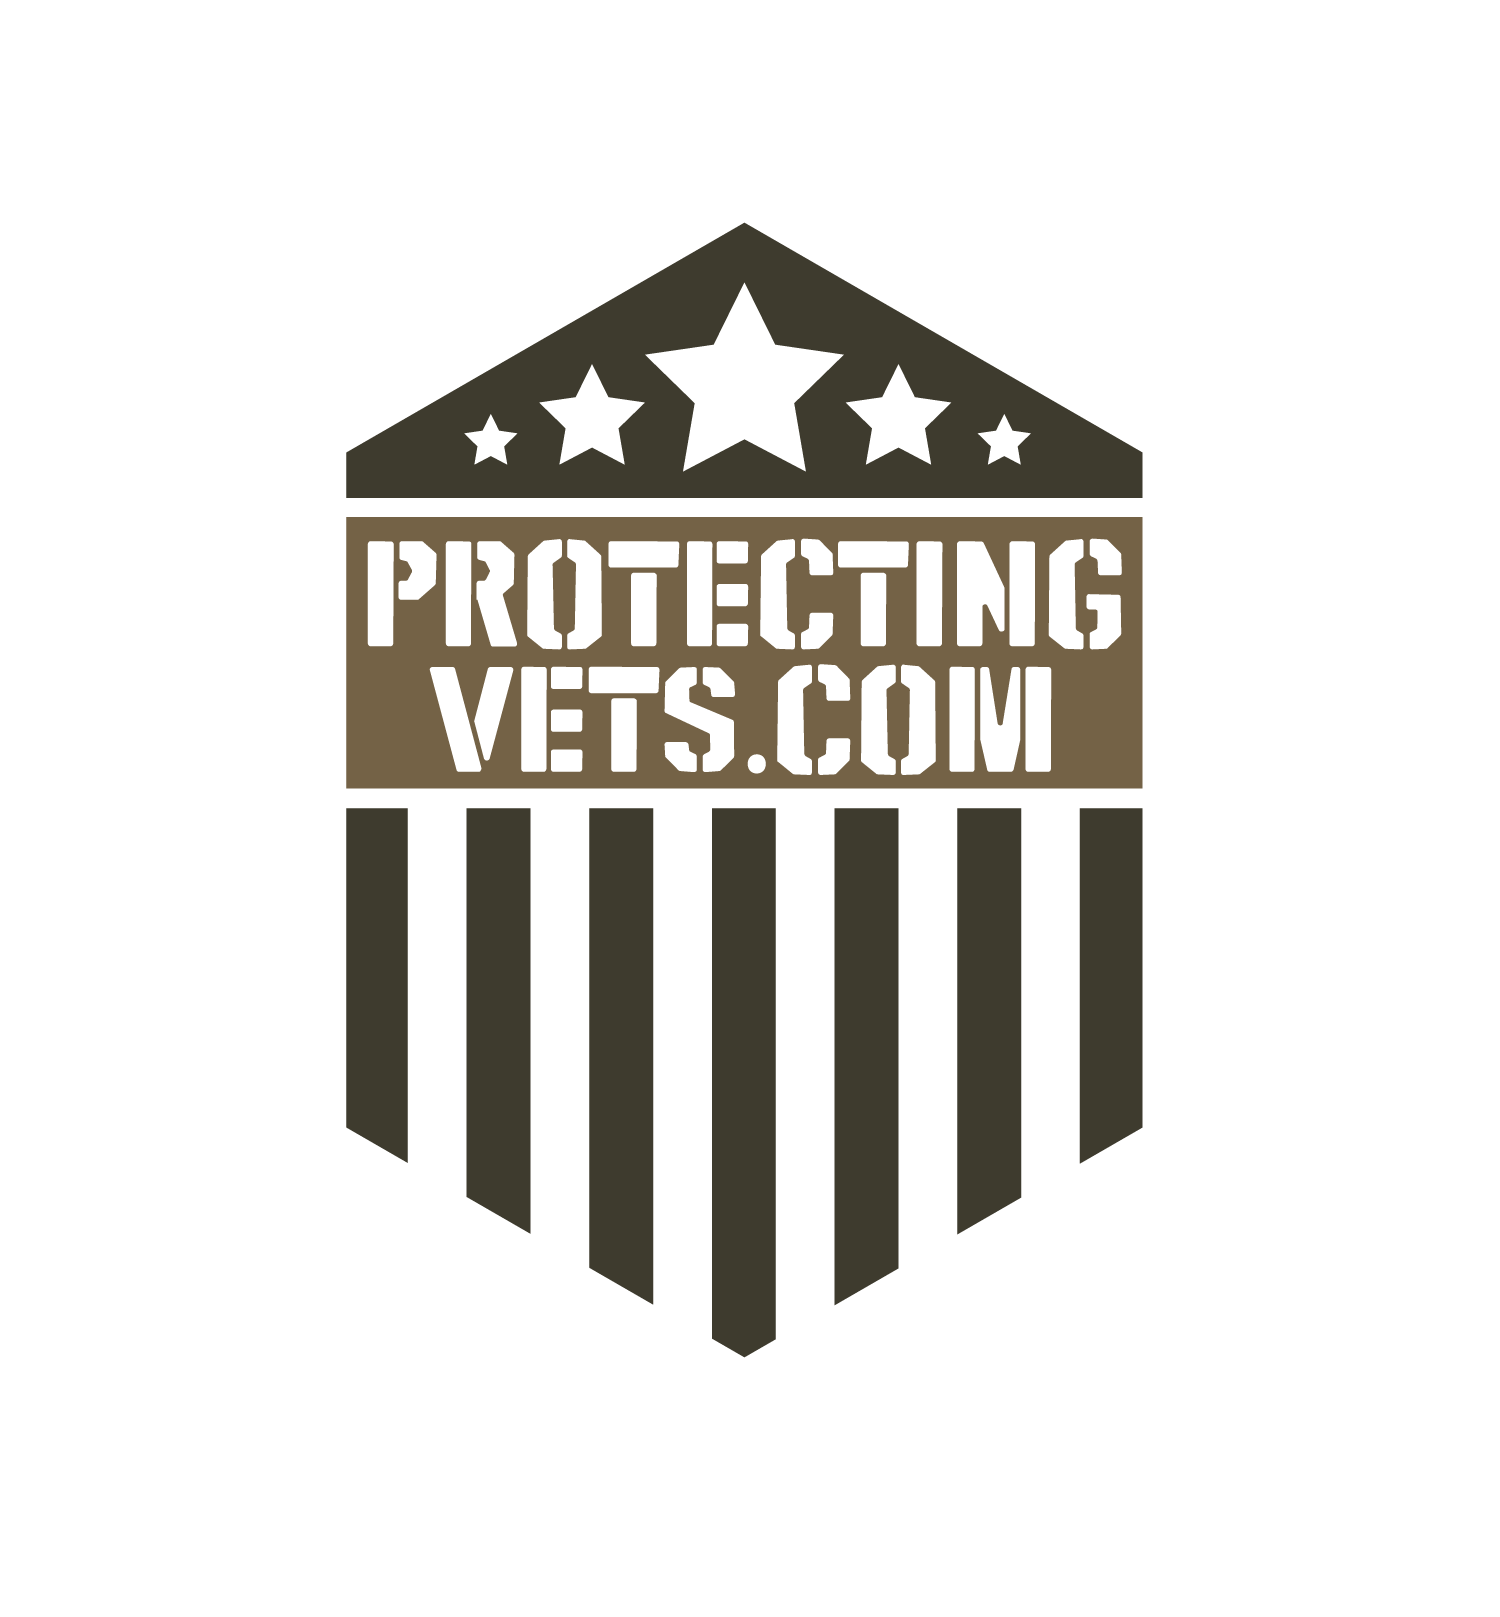 Protecting Vets